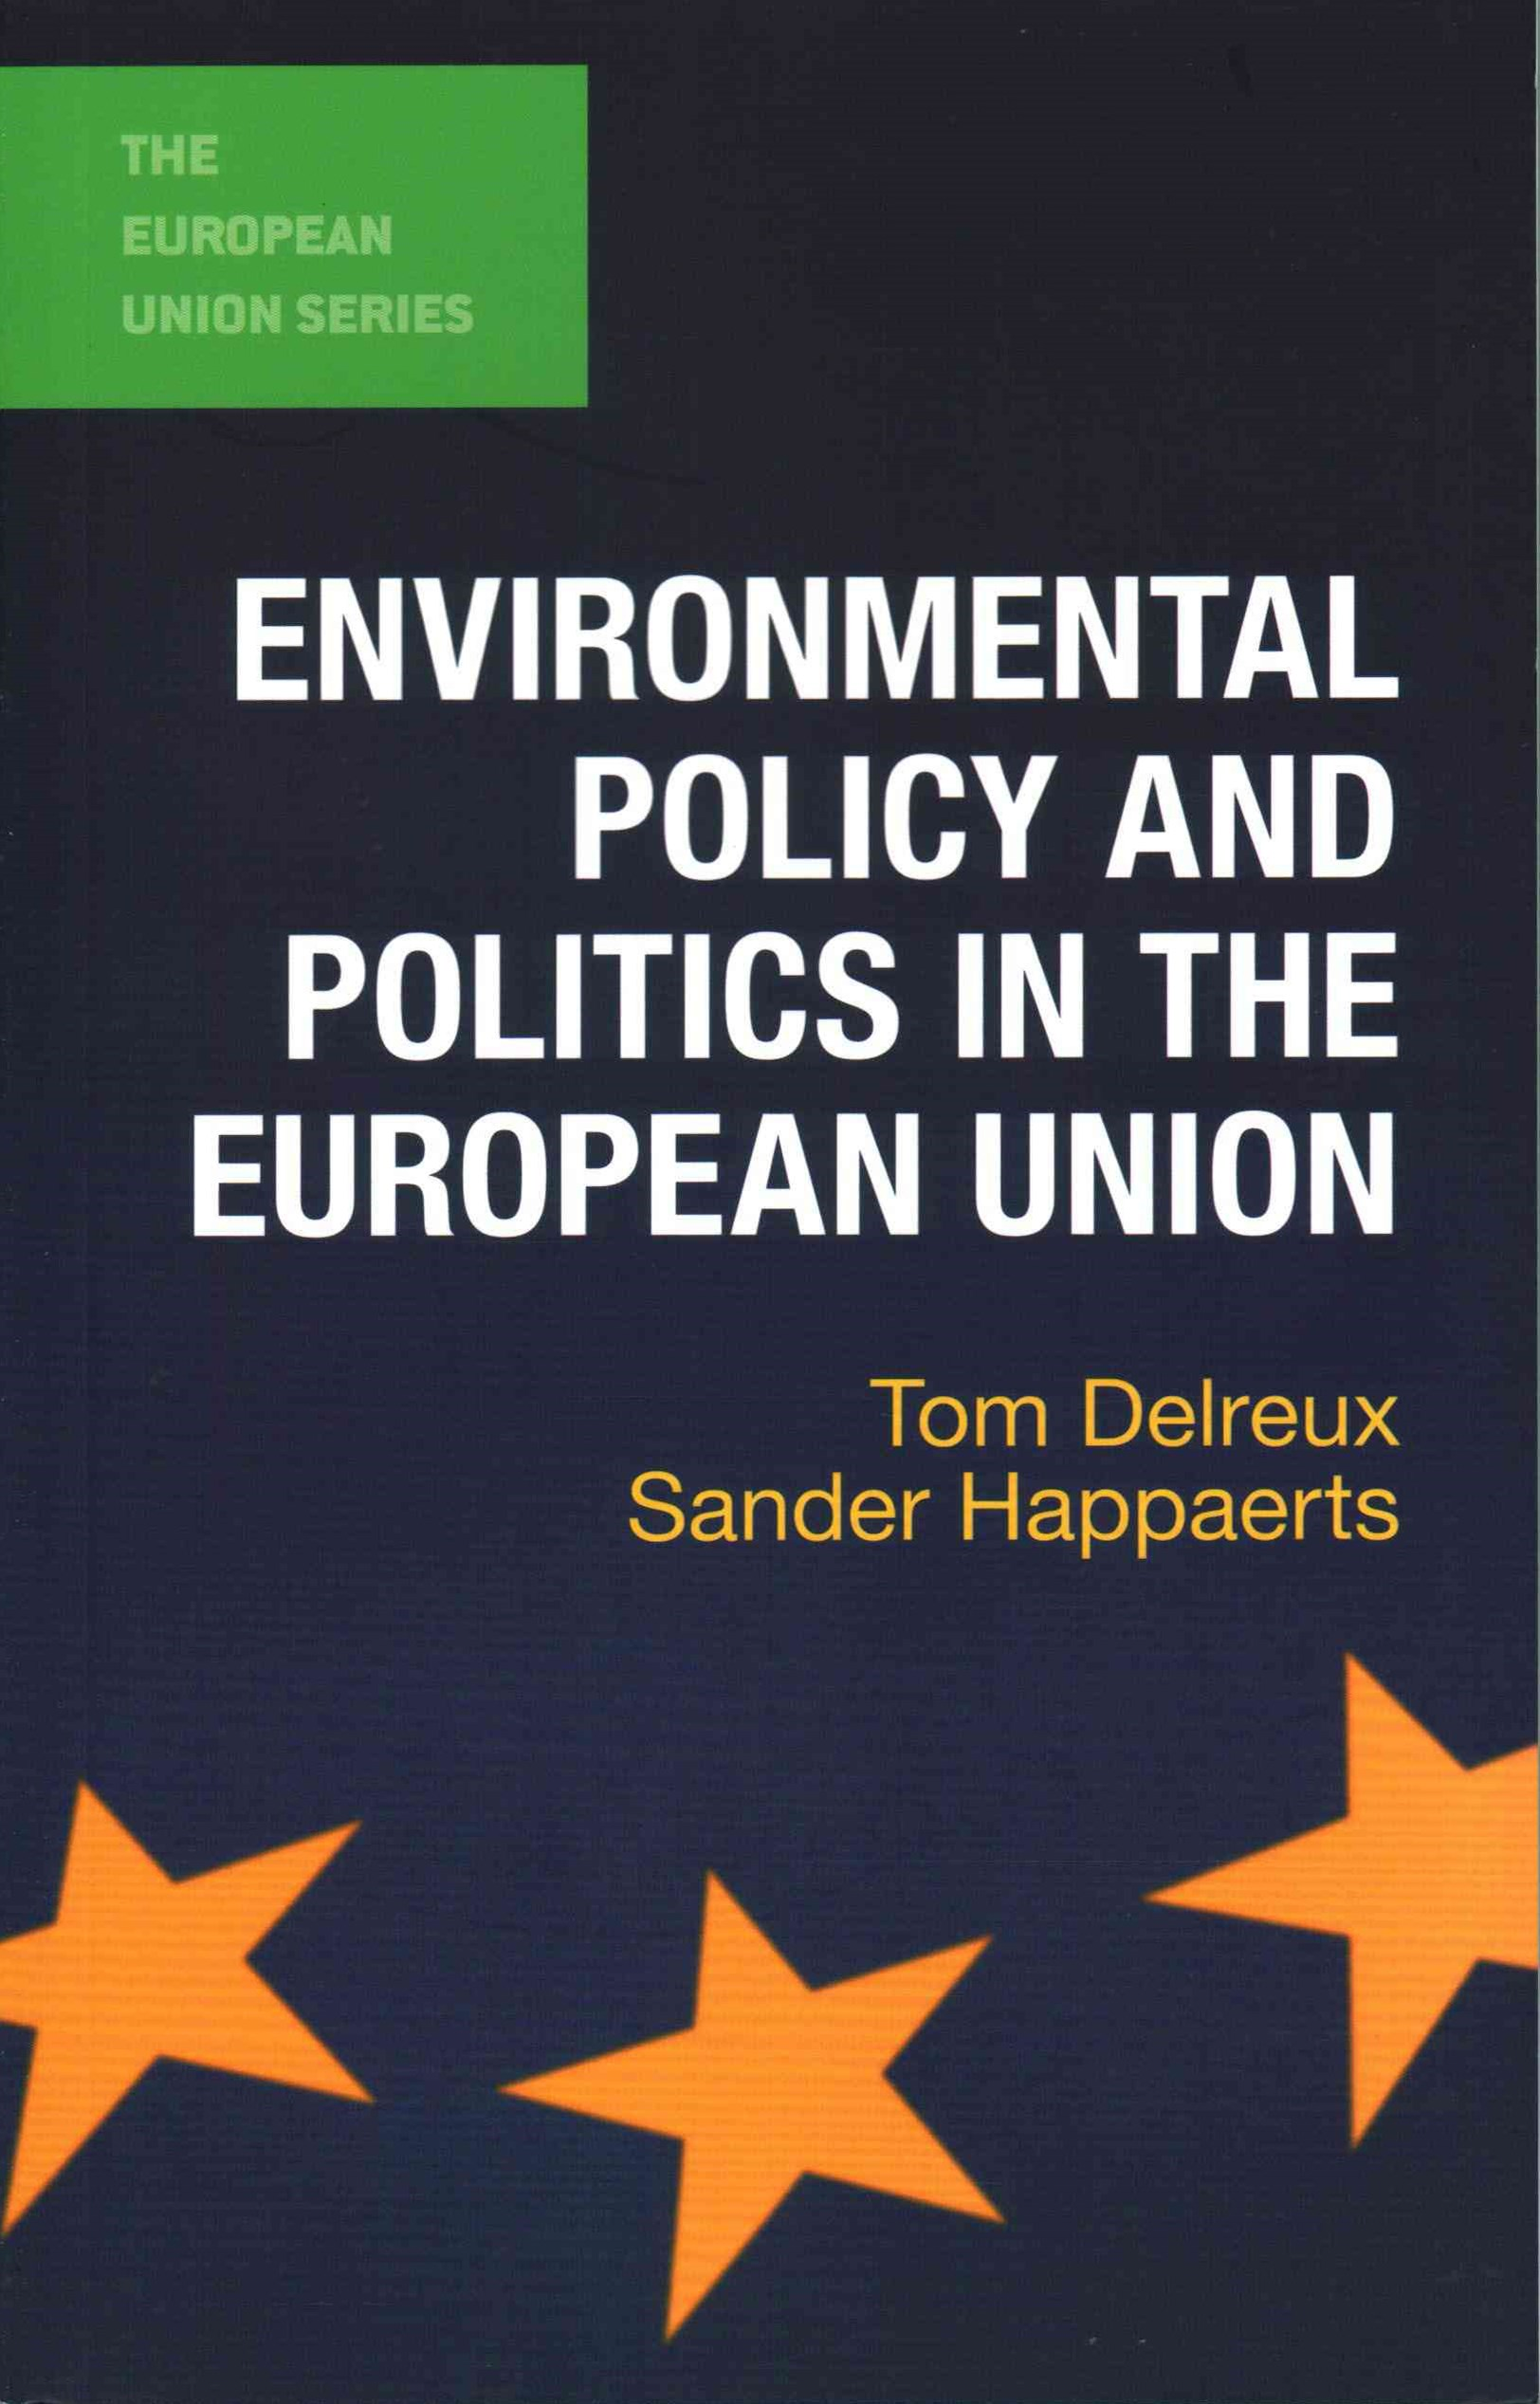 Environmental Policy and Politics in the European Union